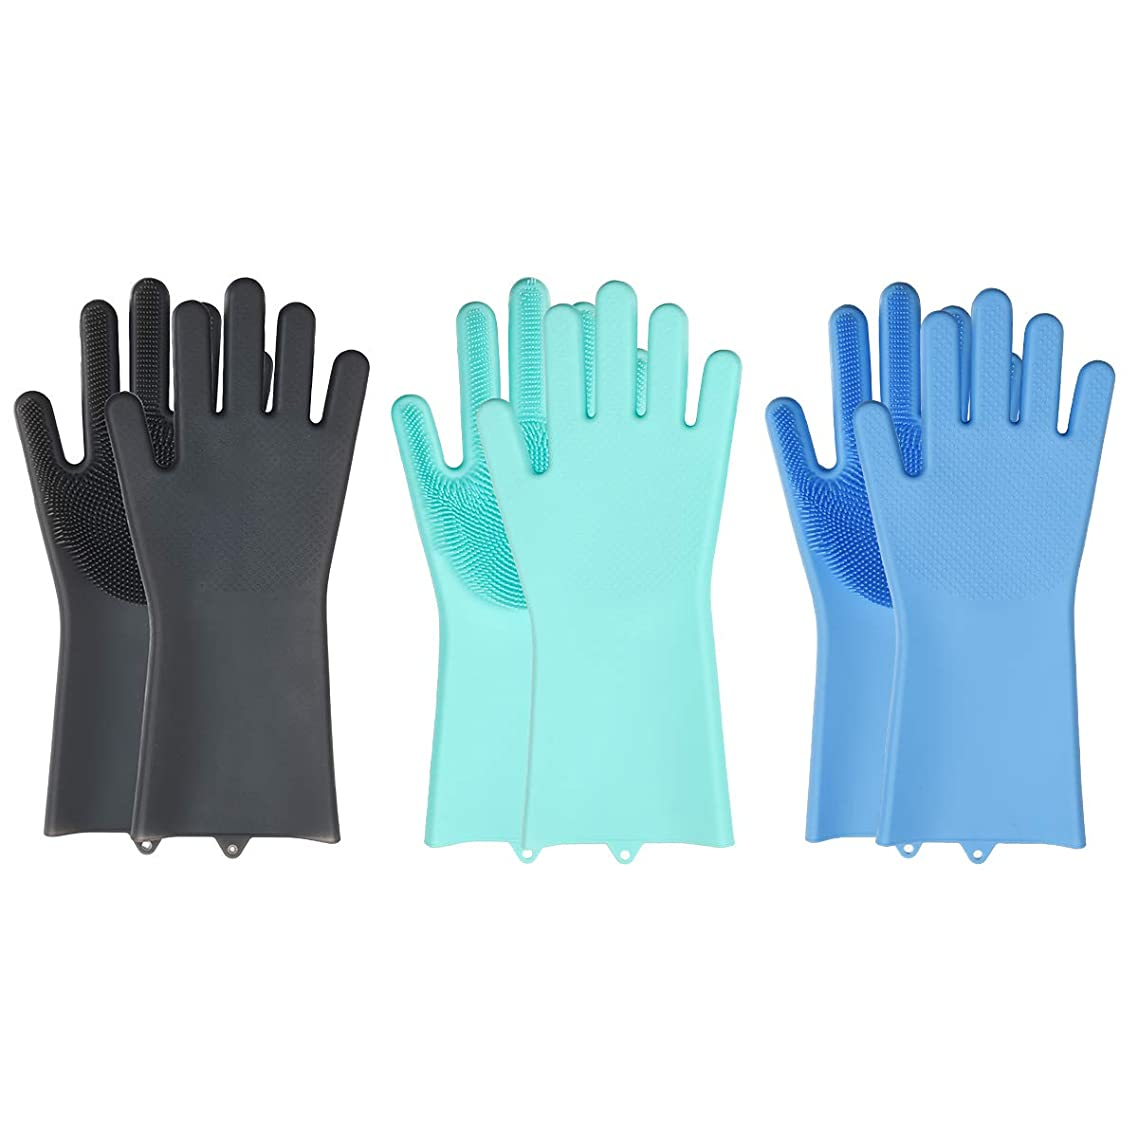 Silicone Dishwashing Gloves, Heat Resistant, For Grilling, BBQ, and Kitchen Baking (Green)